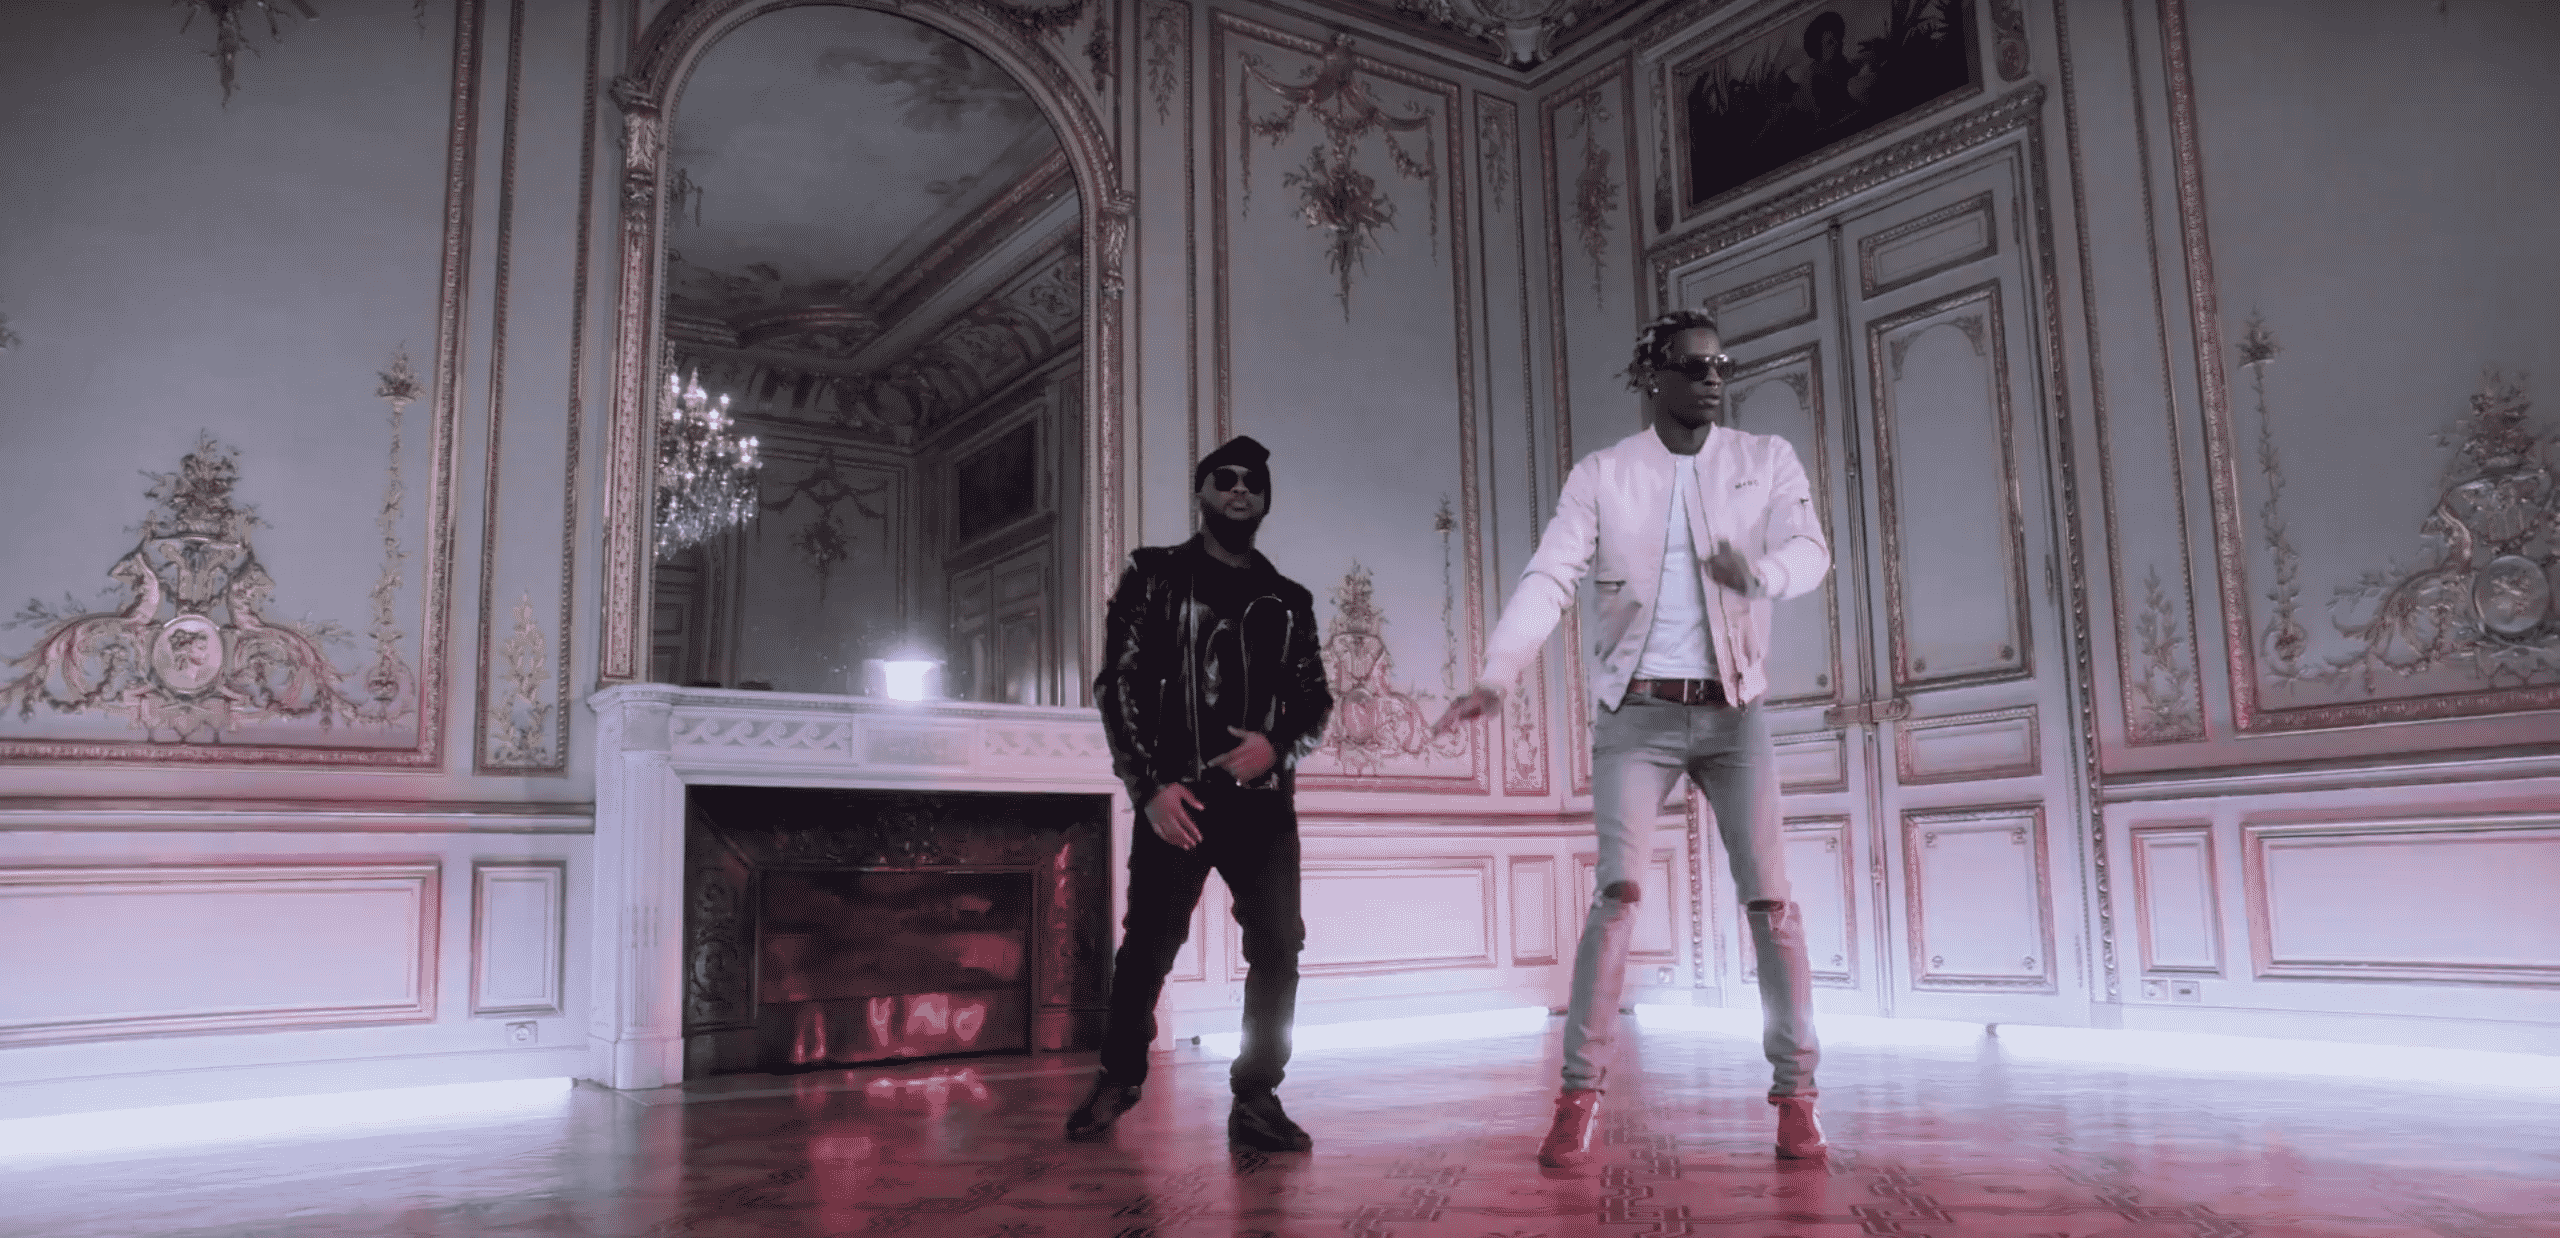 image dosseh clip milliers d'euros